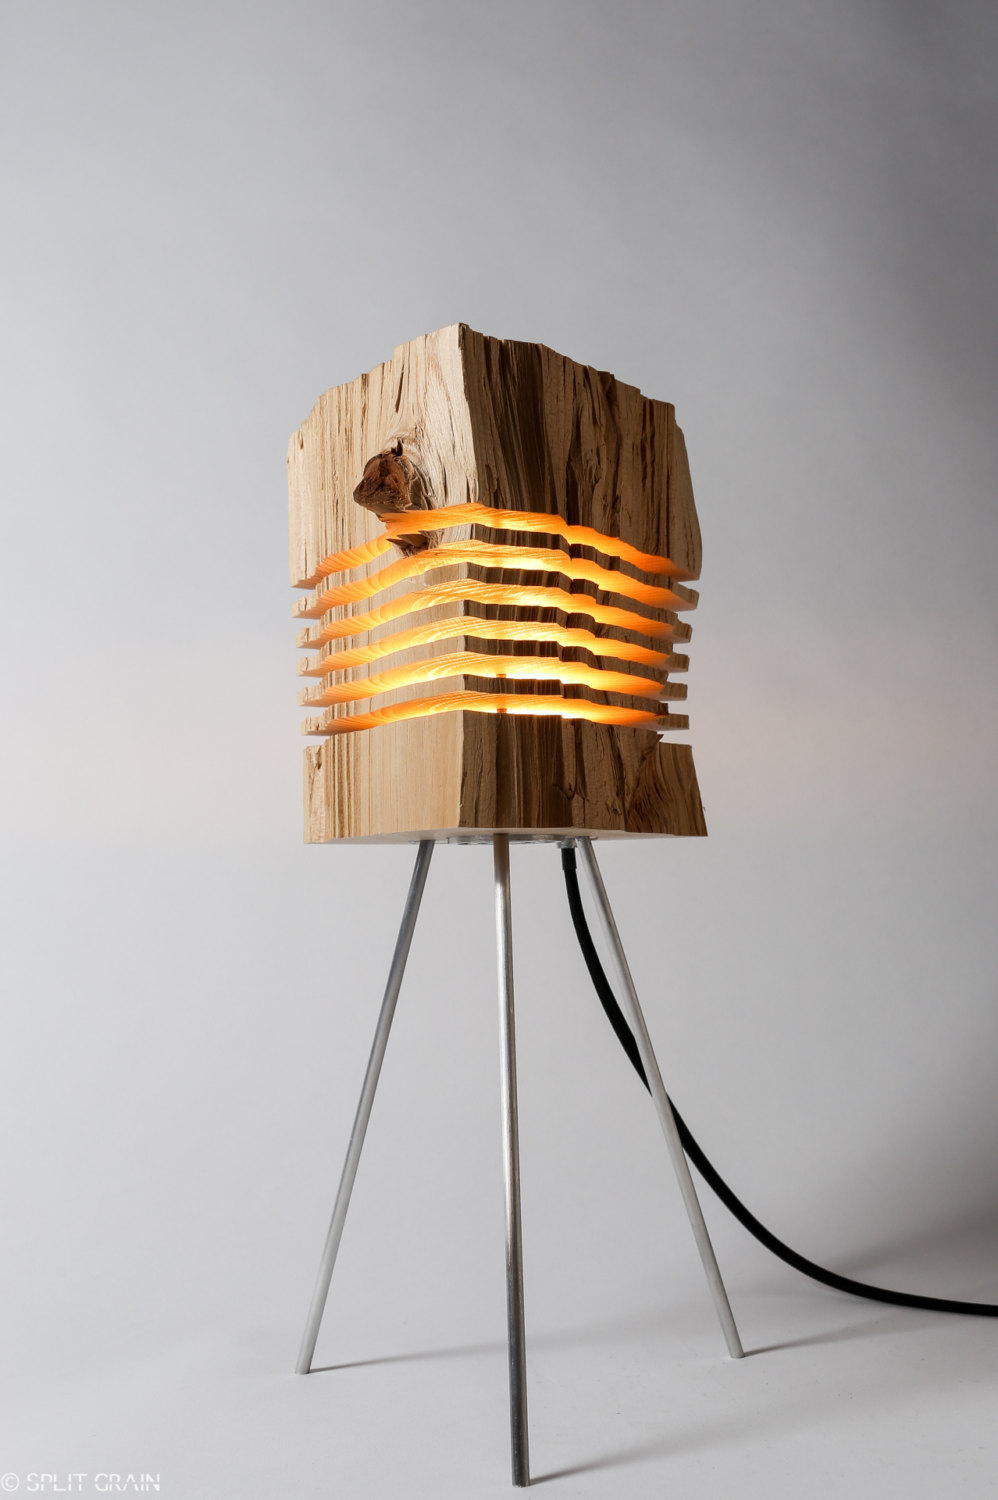 Minimalist Sliced Firewood Lamps by Split Grain